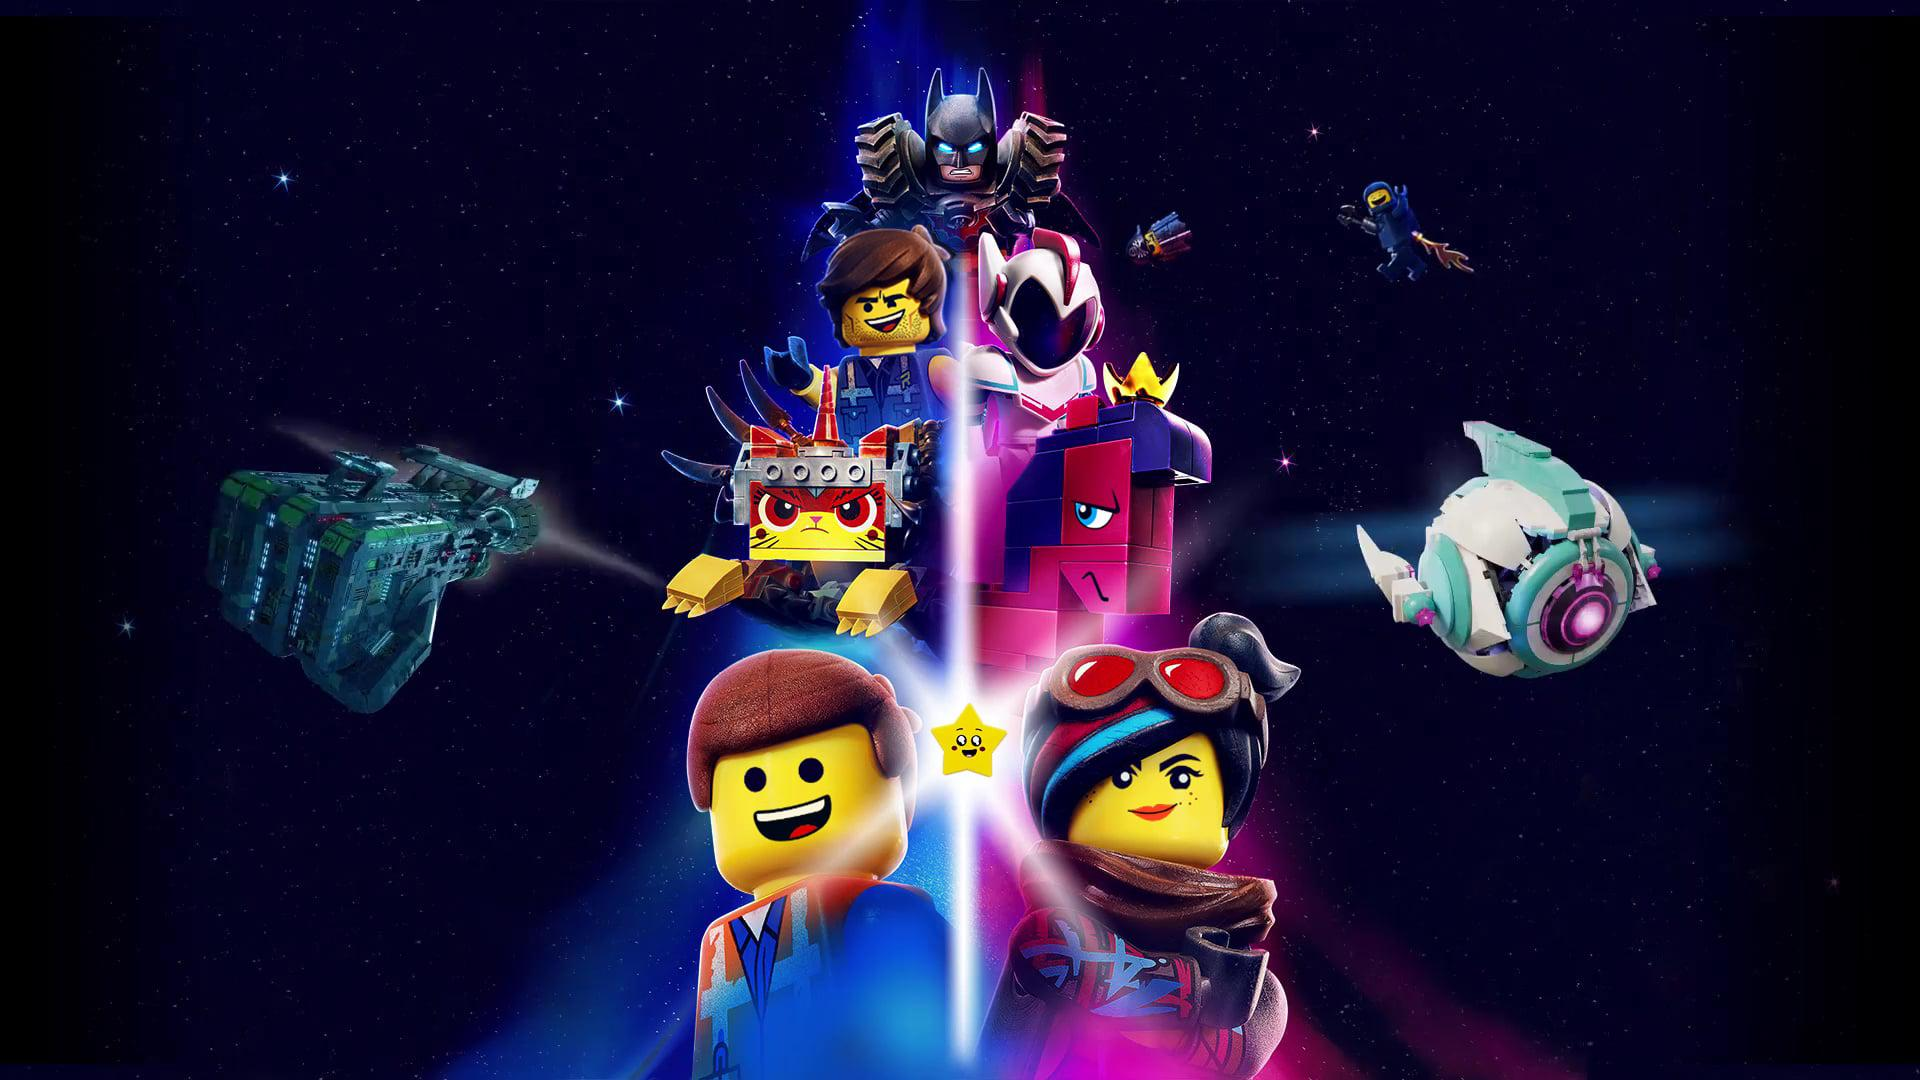 The Lego Movie 2: The Second Part 2019 123movies